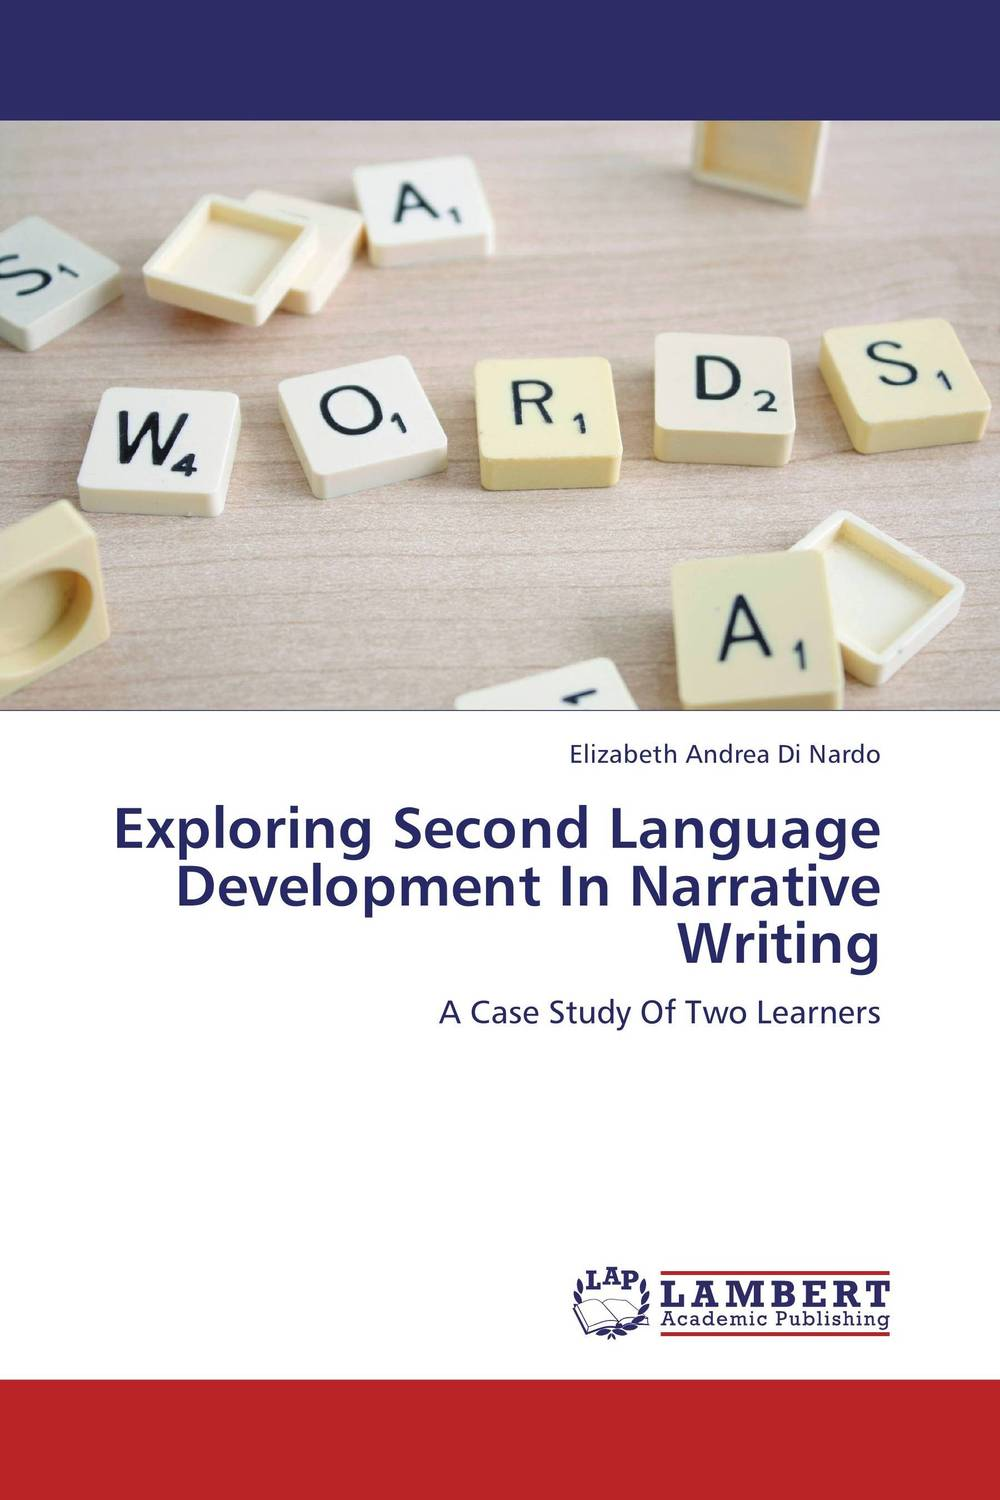 Exploring Second Language Development In Narrative Writing